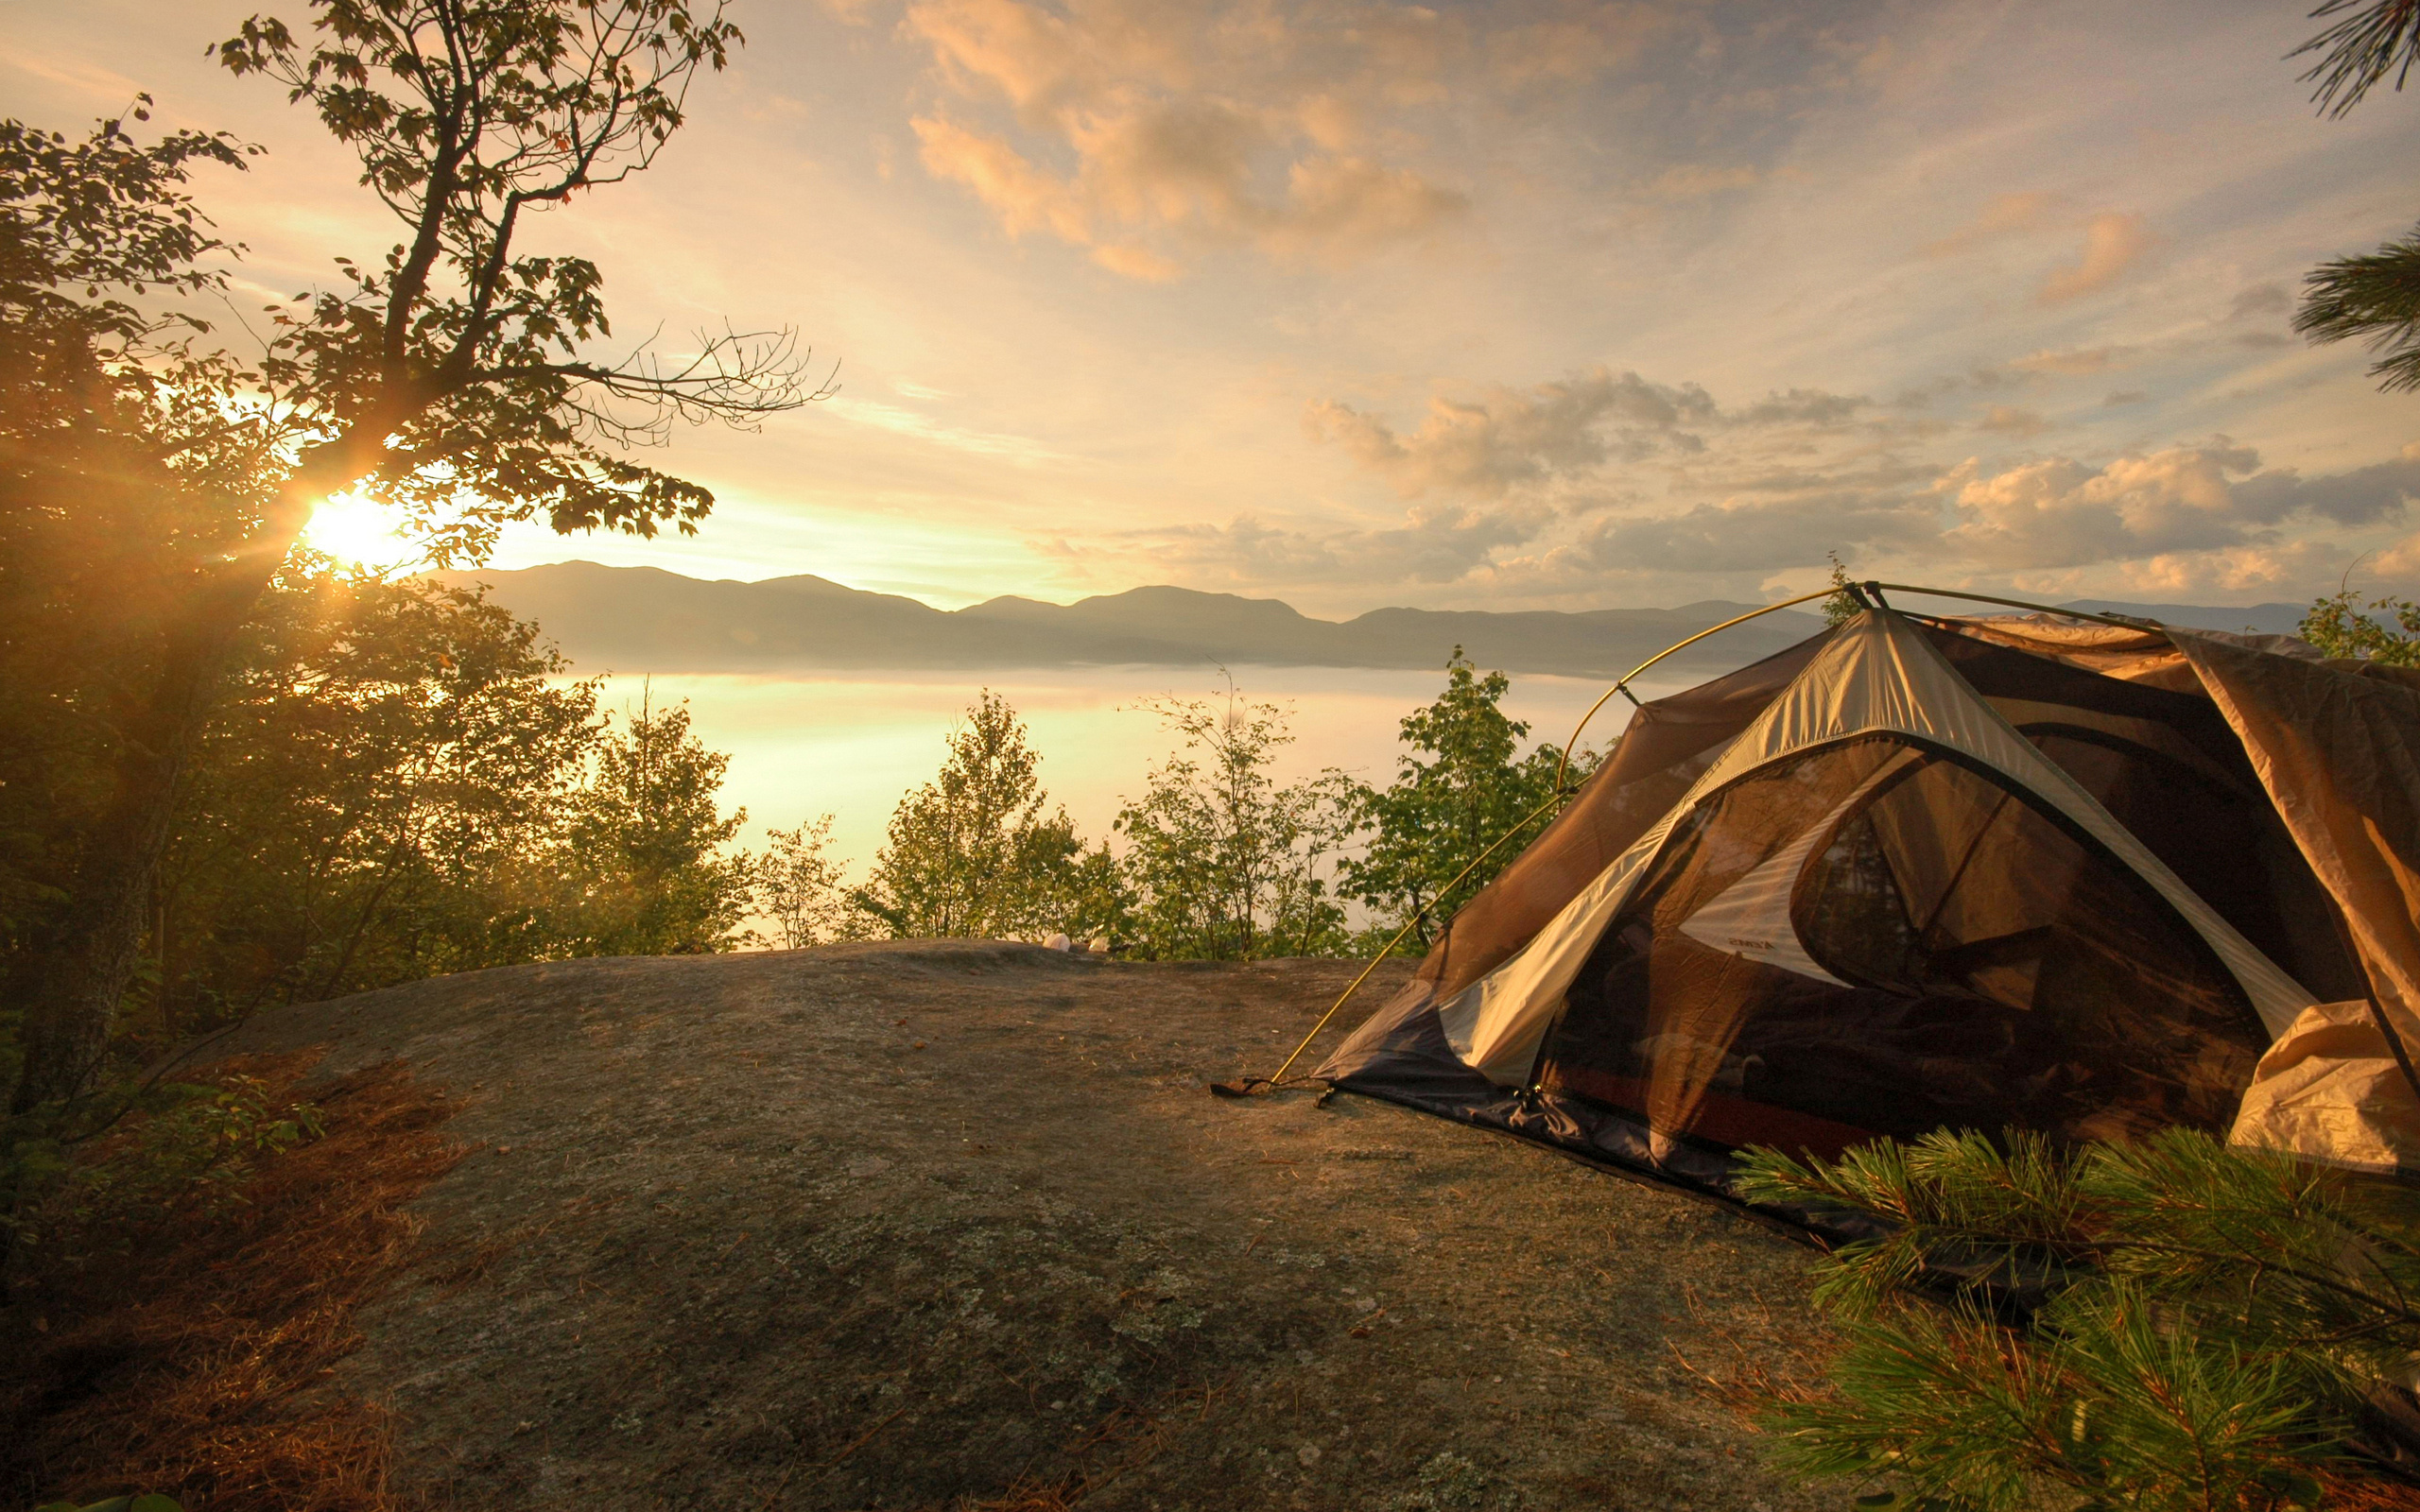 Camping Backgrounds, Compatible - PC, Mobile, Gadgets| 2560x1600 px